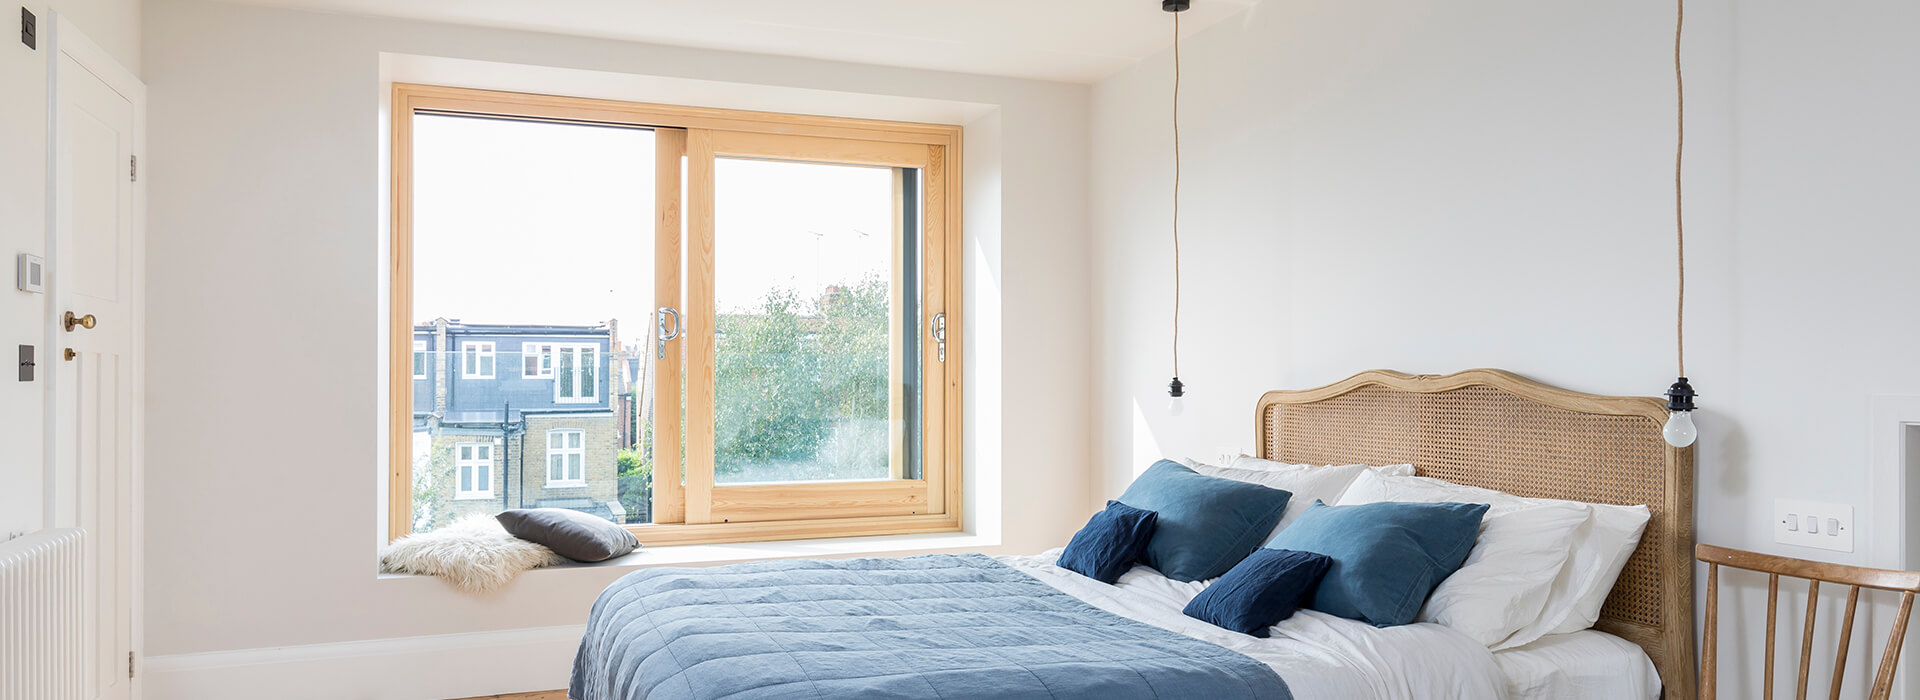 How To Cool Down an Attic Bedroom   Proficiency